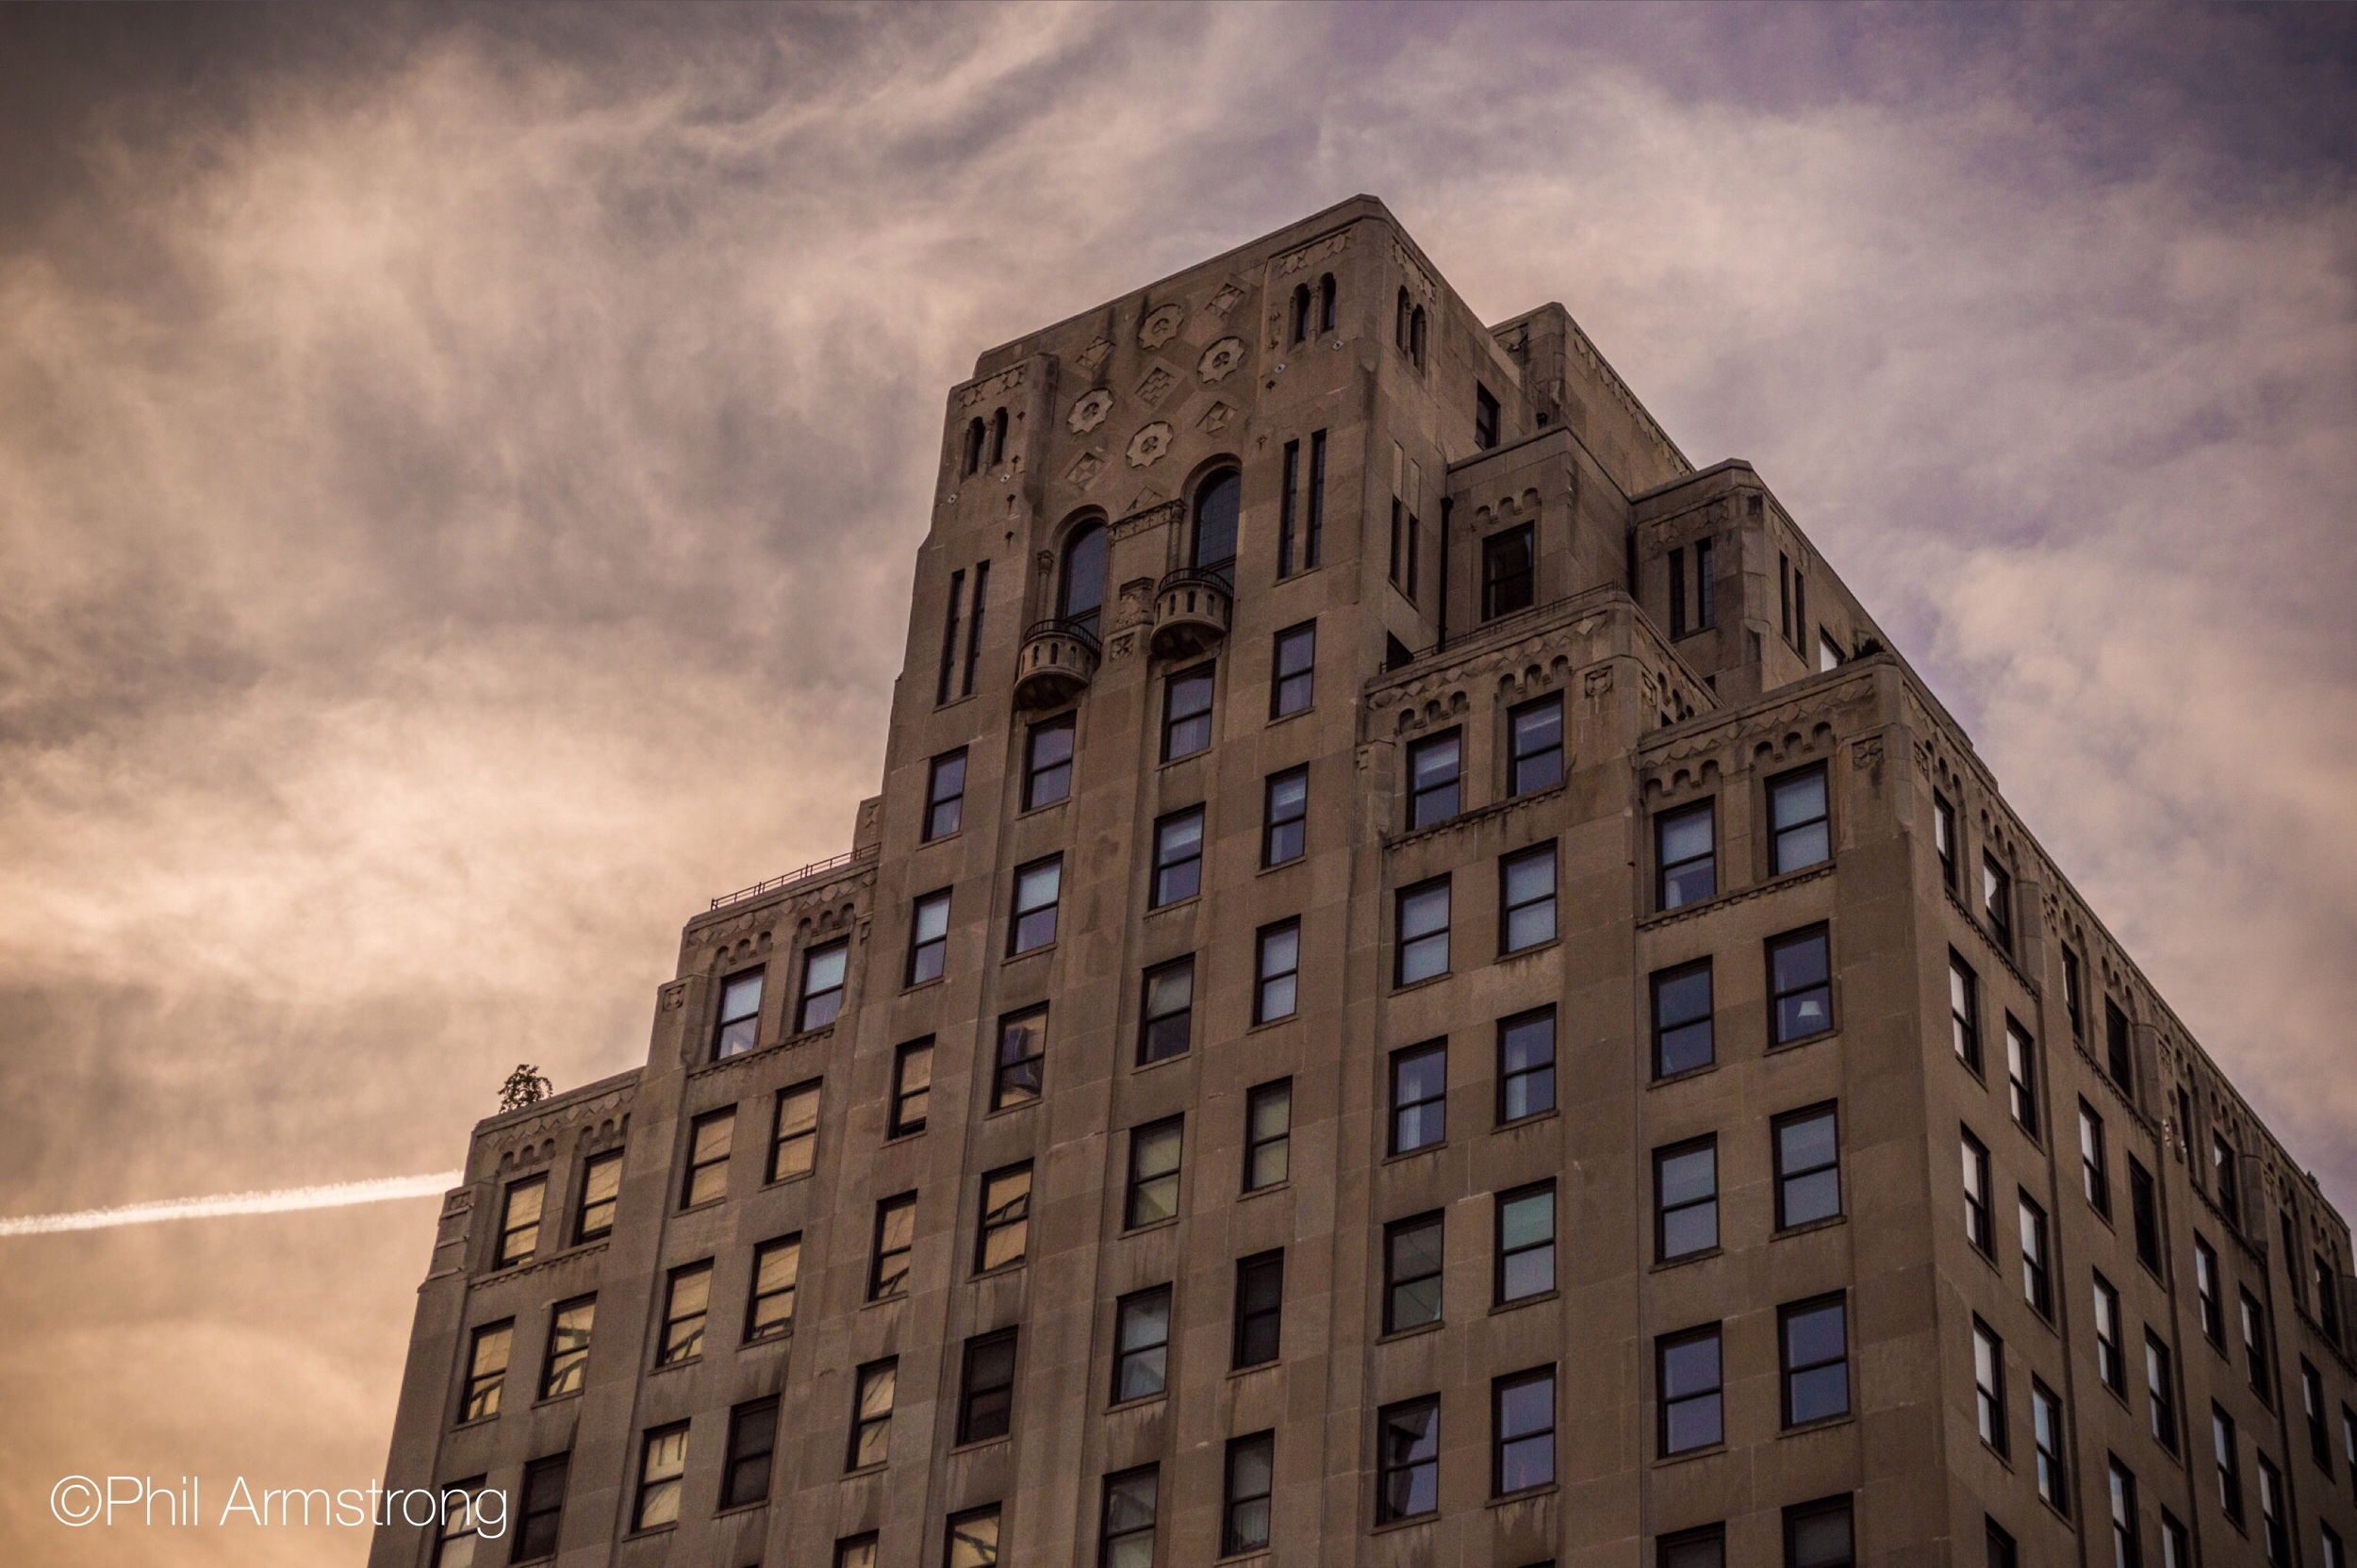 I loved redoing this one. I'll never tire of photographing this Art Deco masterpiece.